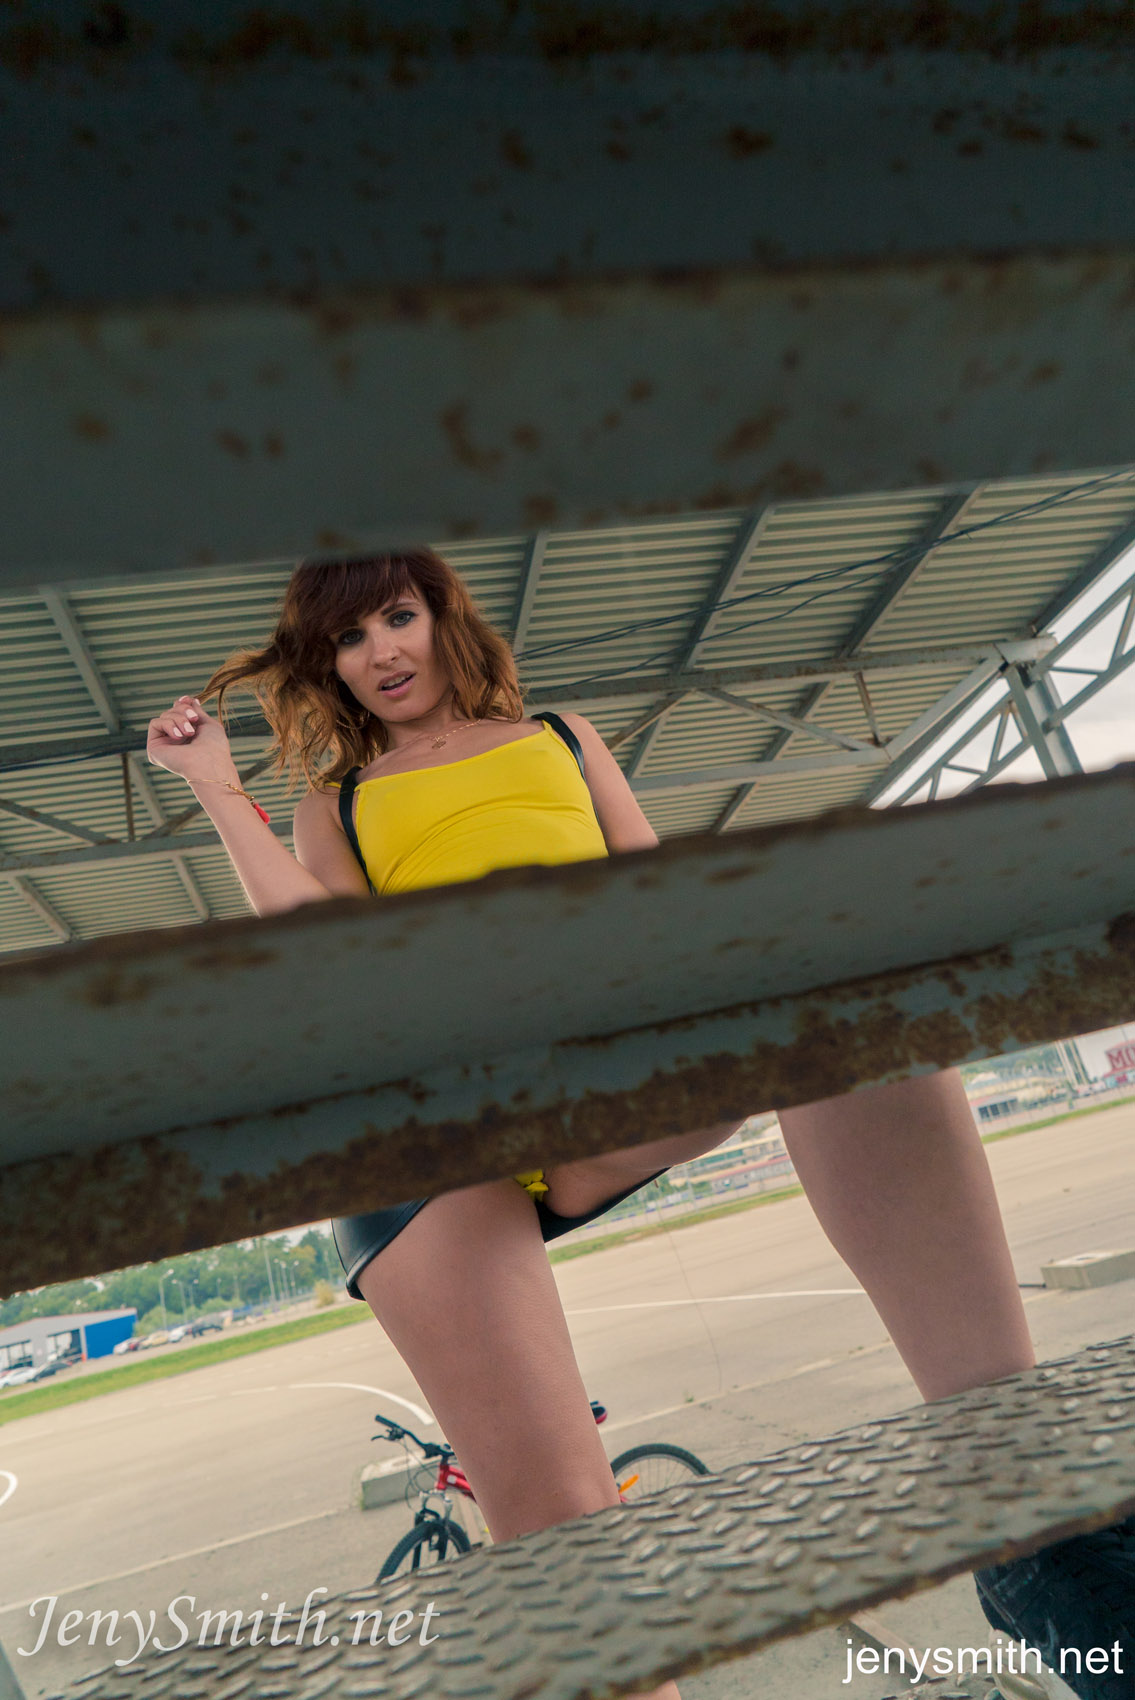 Public upskirt no panties hairy pussy agree, amusing